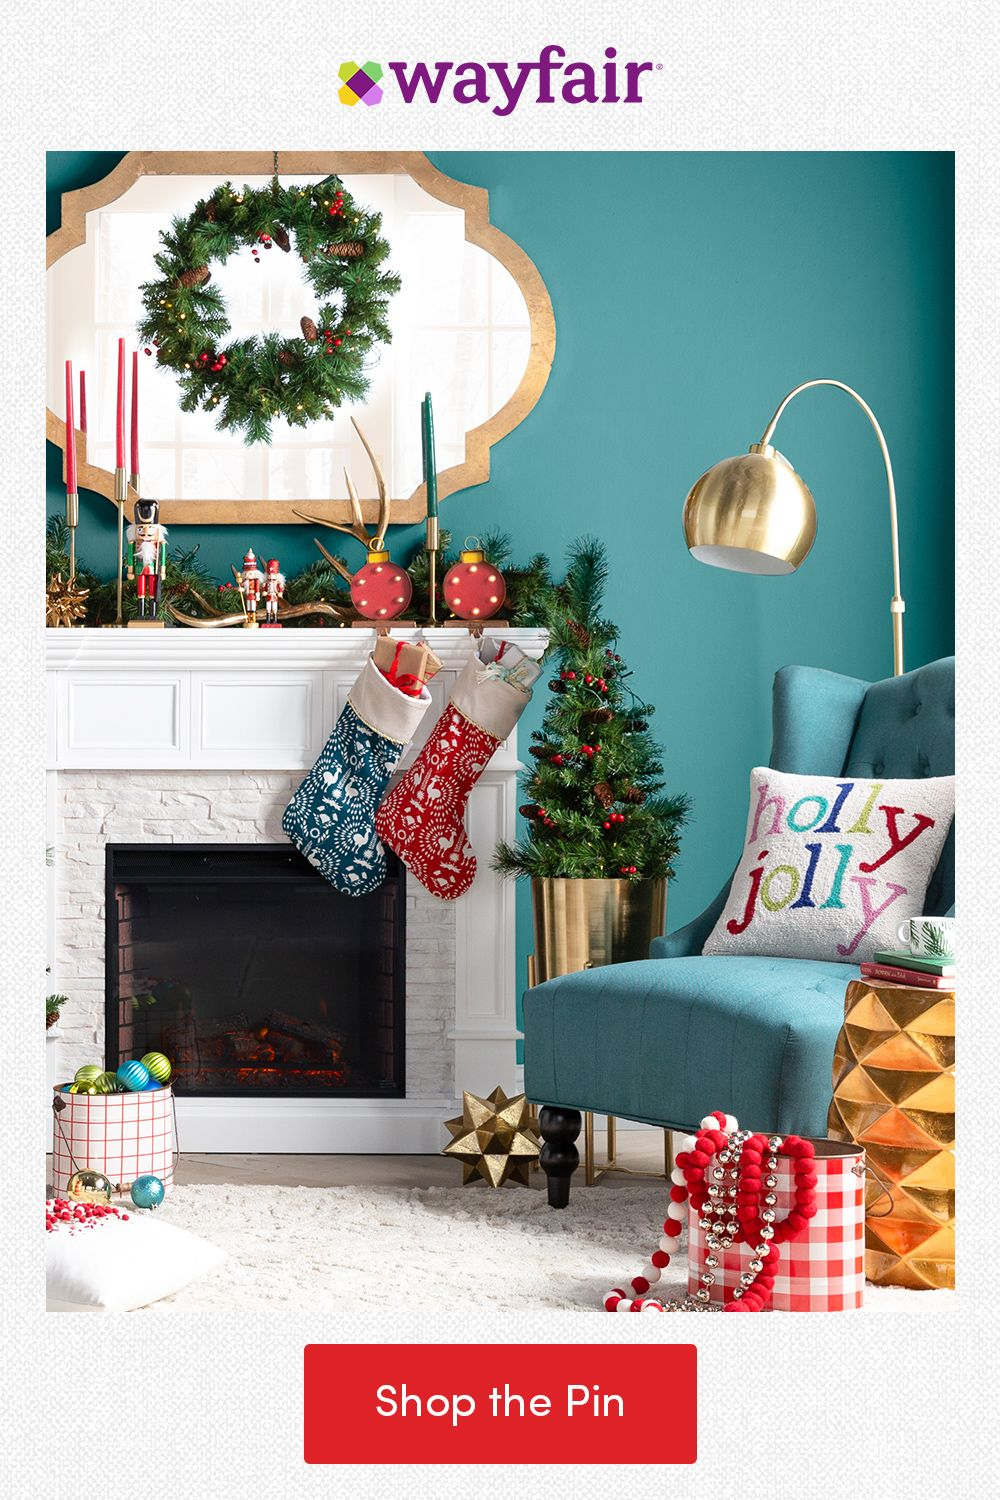 Spread cheer with holiday home decor for your living room! Add a festive flair with cranberry garlands for the mantel, jolly pillows for seating, and gold decor for everywhere else. From the holidays to every day, find everything home with fast and FREE shipping at Wayfair.